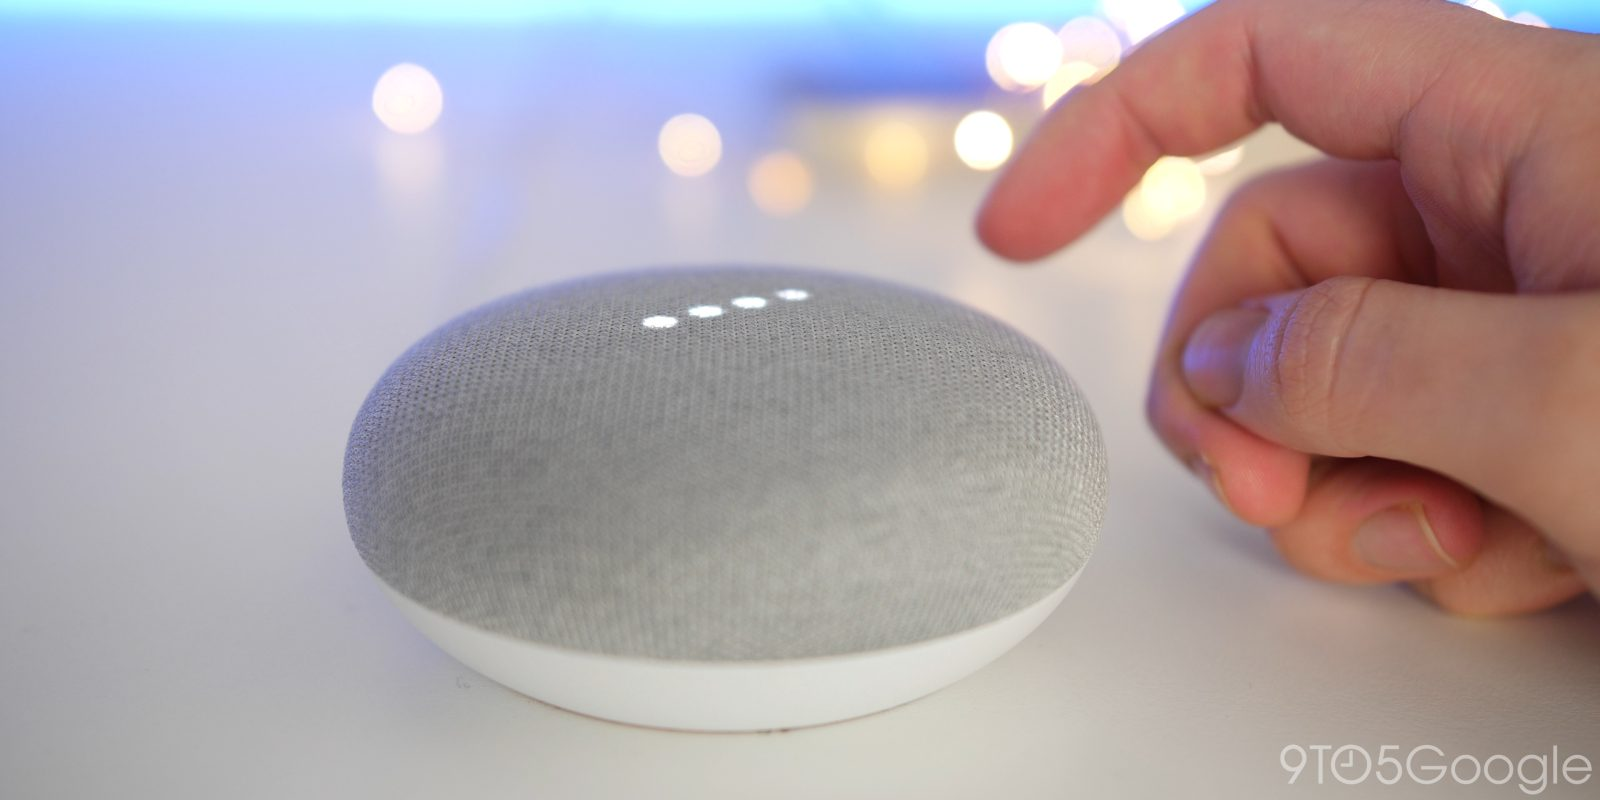 Google offering free Home Mini to Google One subscribers in the UK